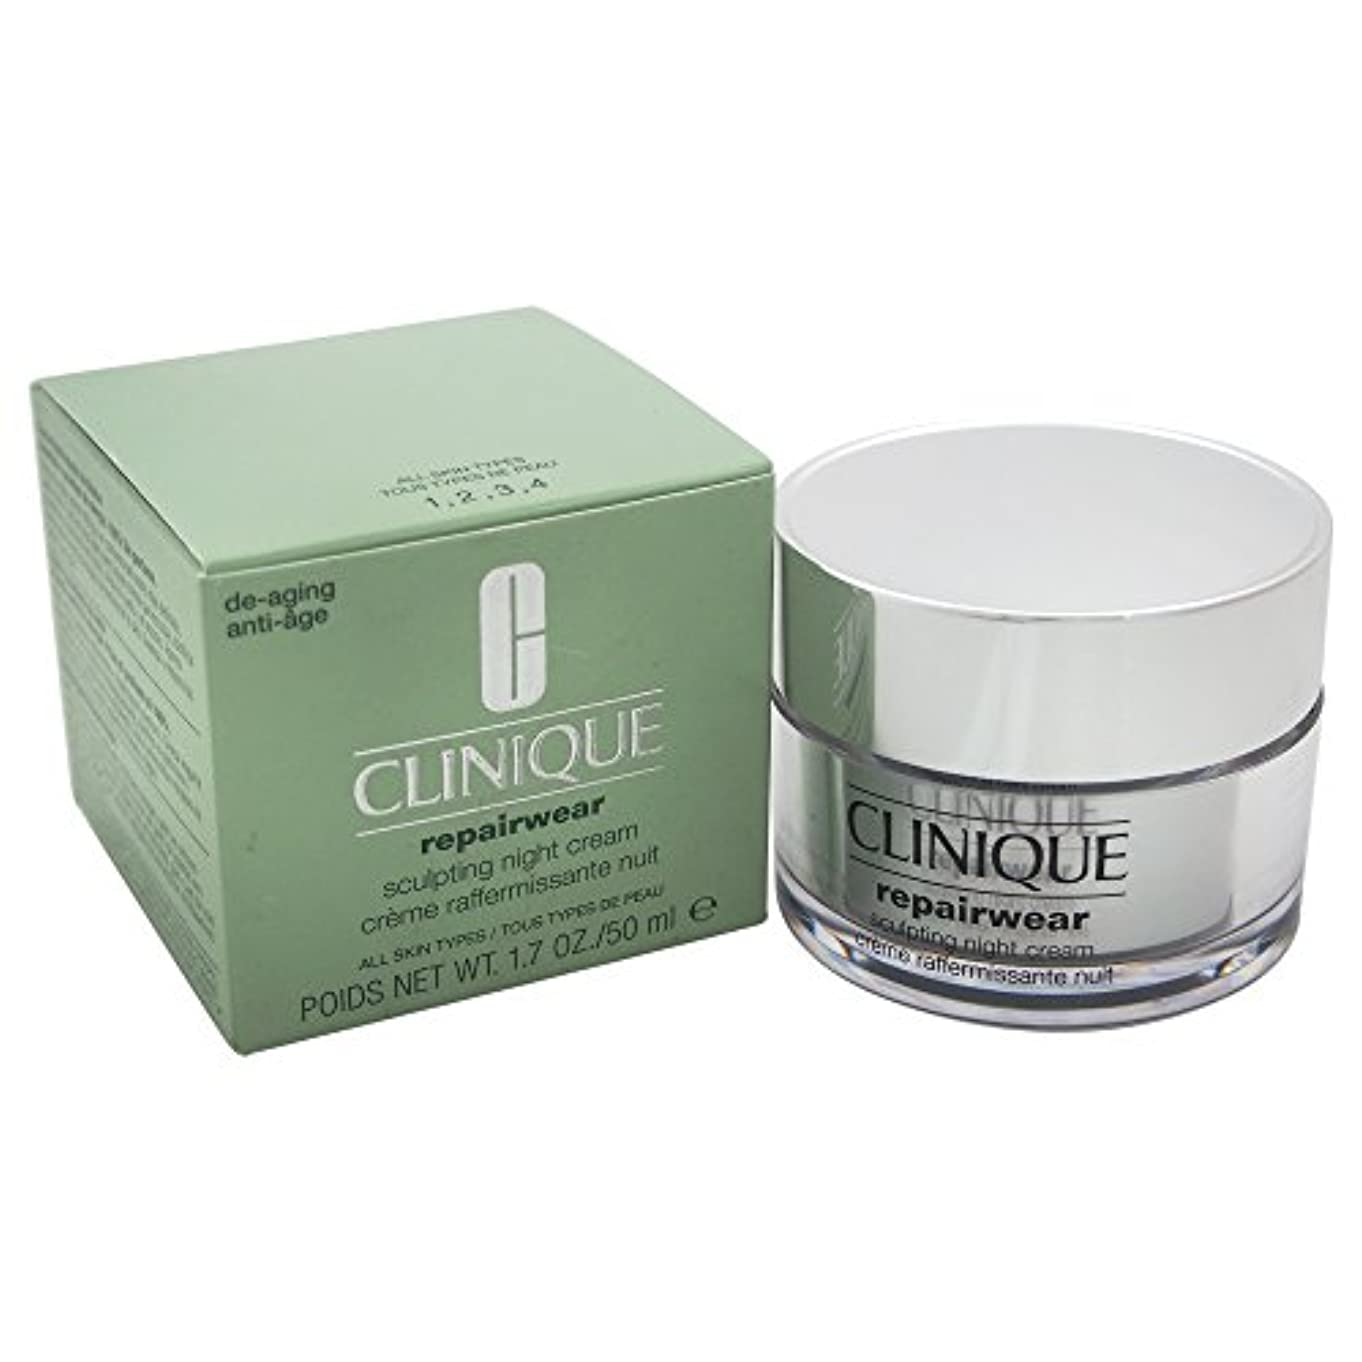 ブロック青松Clinique Repairwear Uplifting Sculpting Night Cream 50ml [並行輸入品]